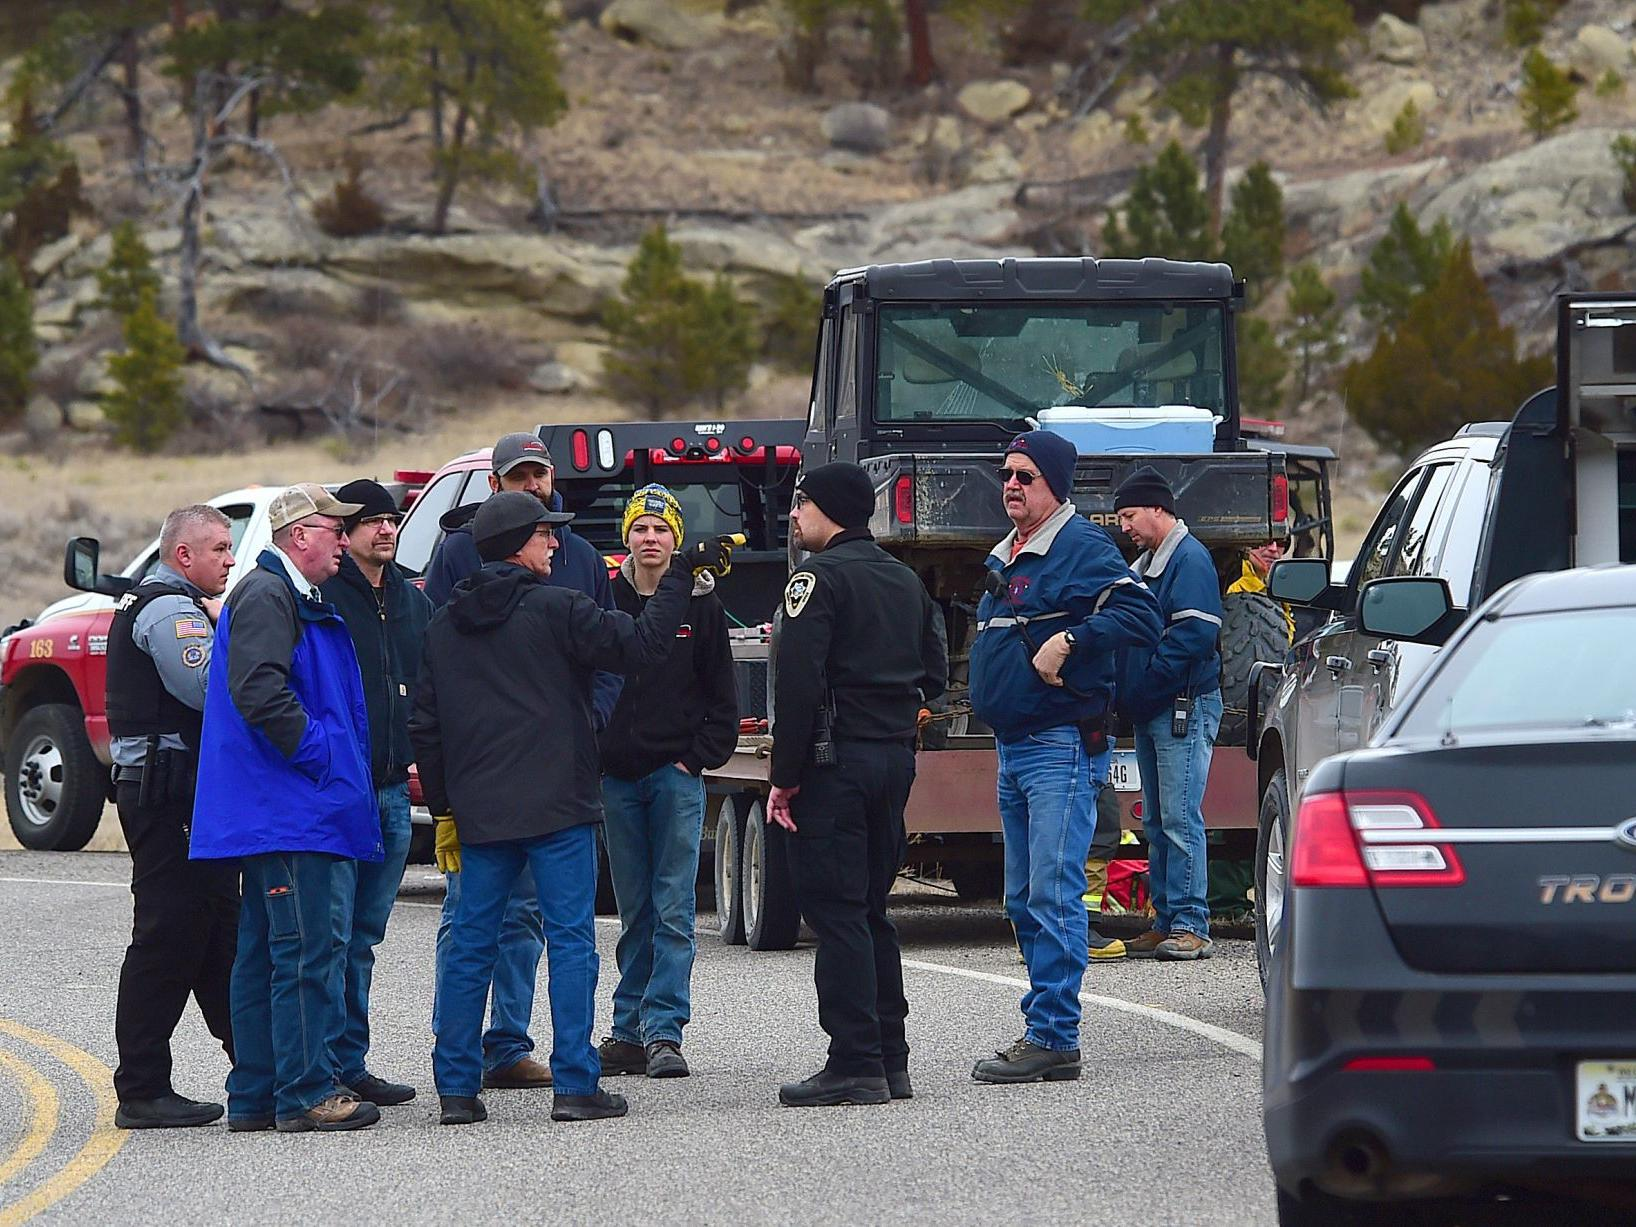 Update 4 Bodies Recovered From Plane Crash Site North Of Billings Local News Billingsgazette Com